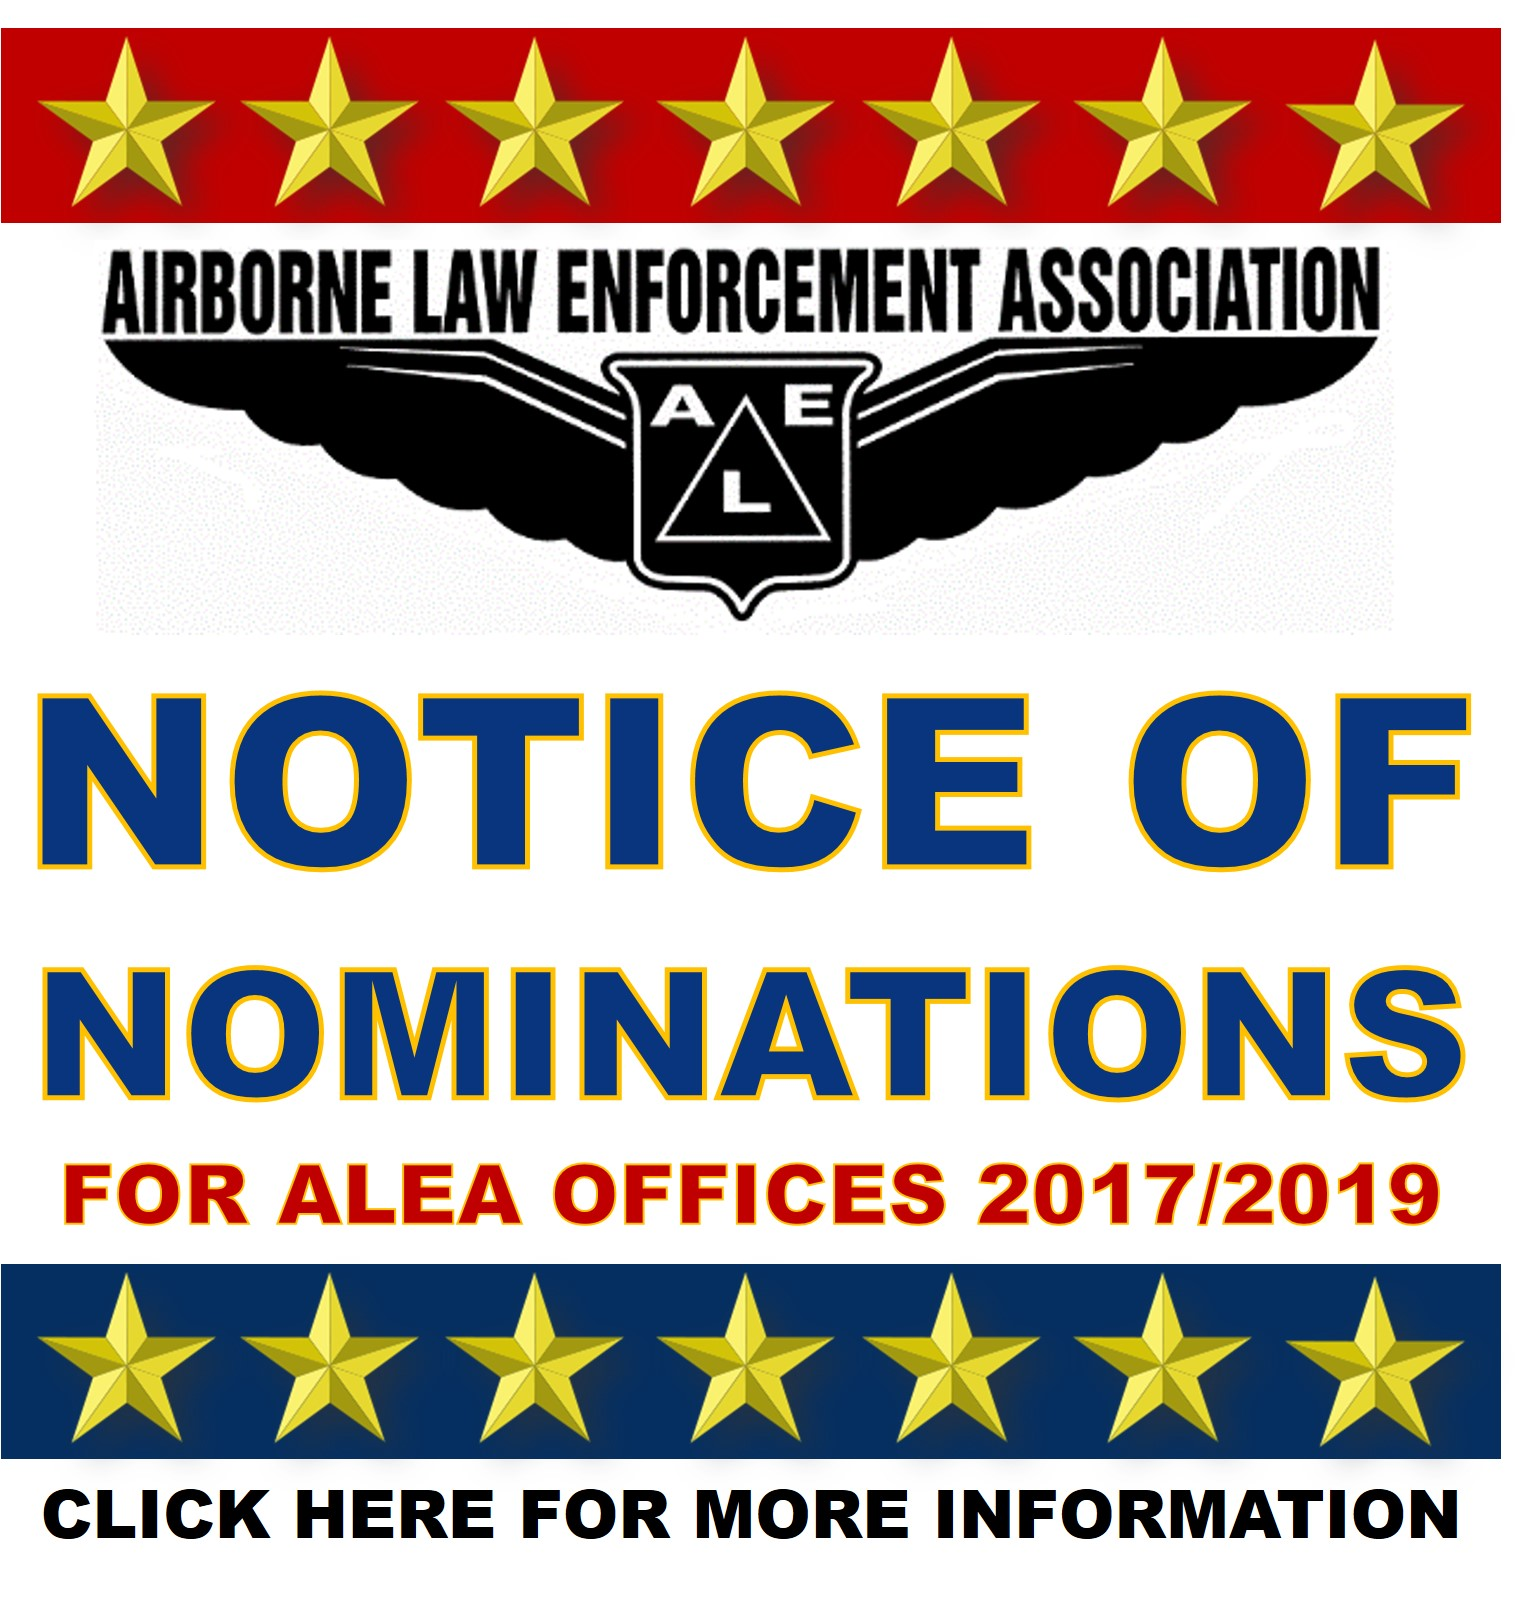 Catalog - 2017/2019 Notice of Nominations